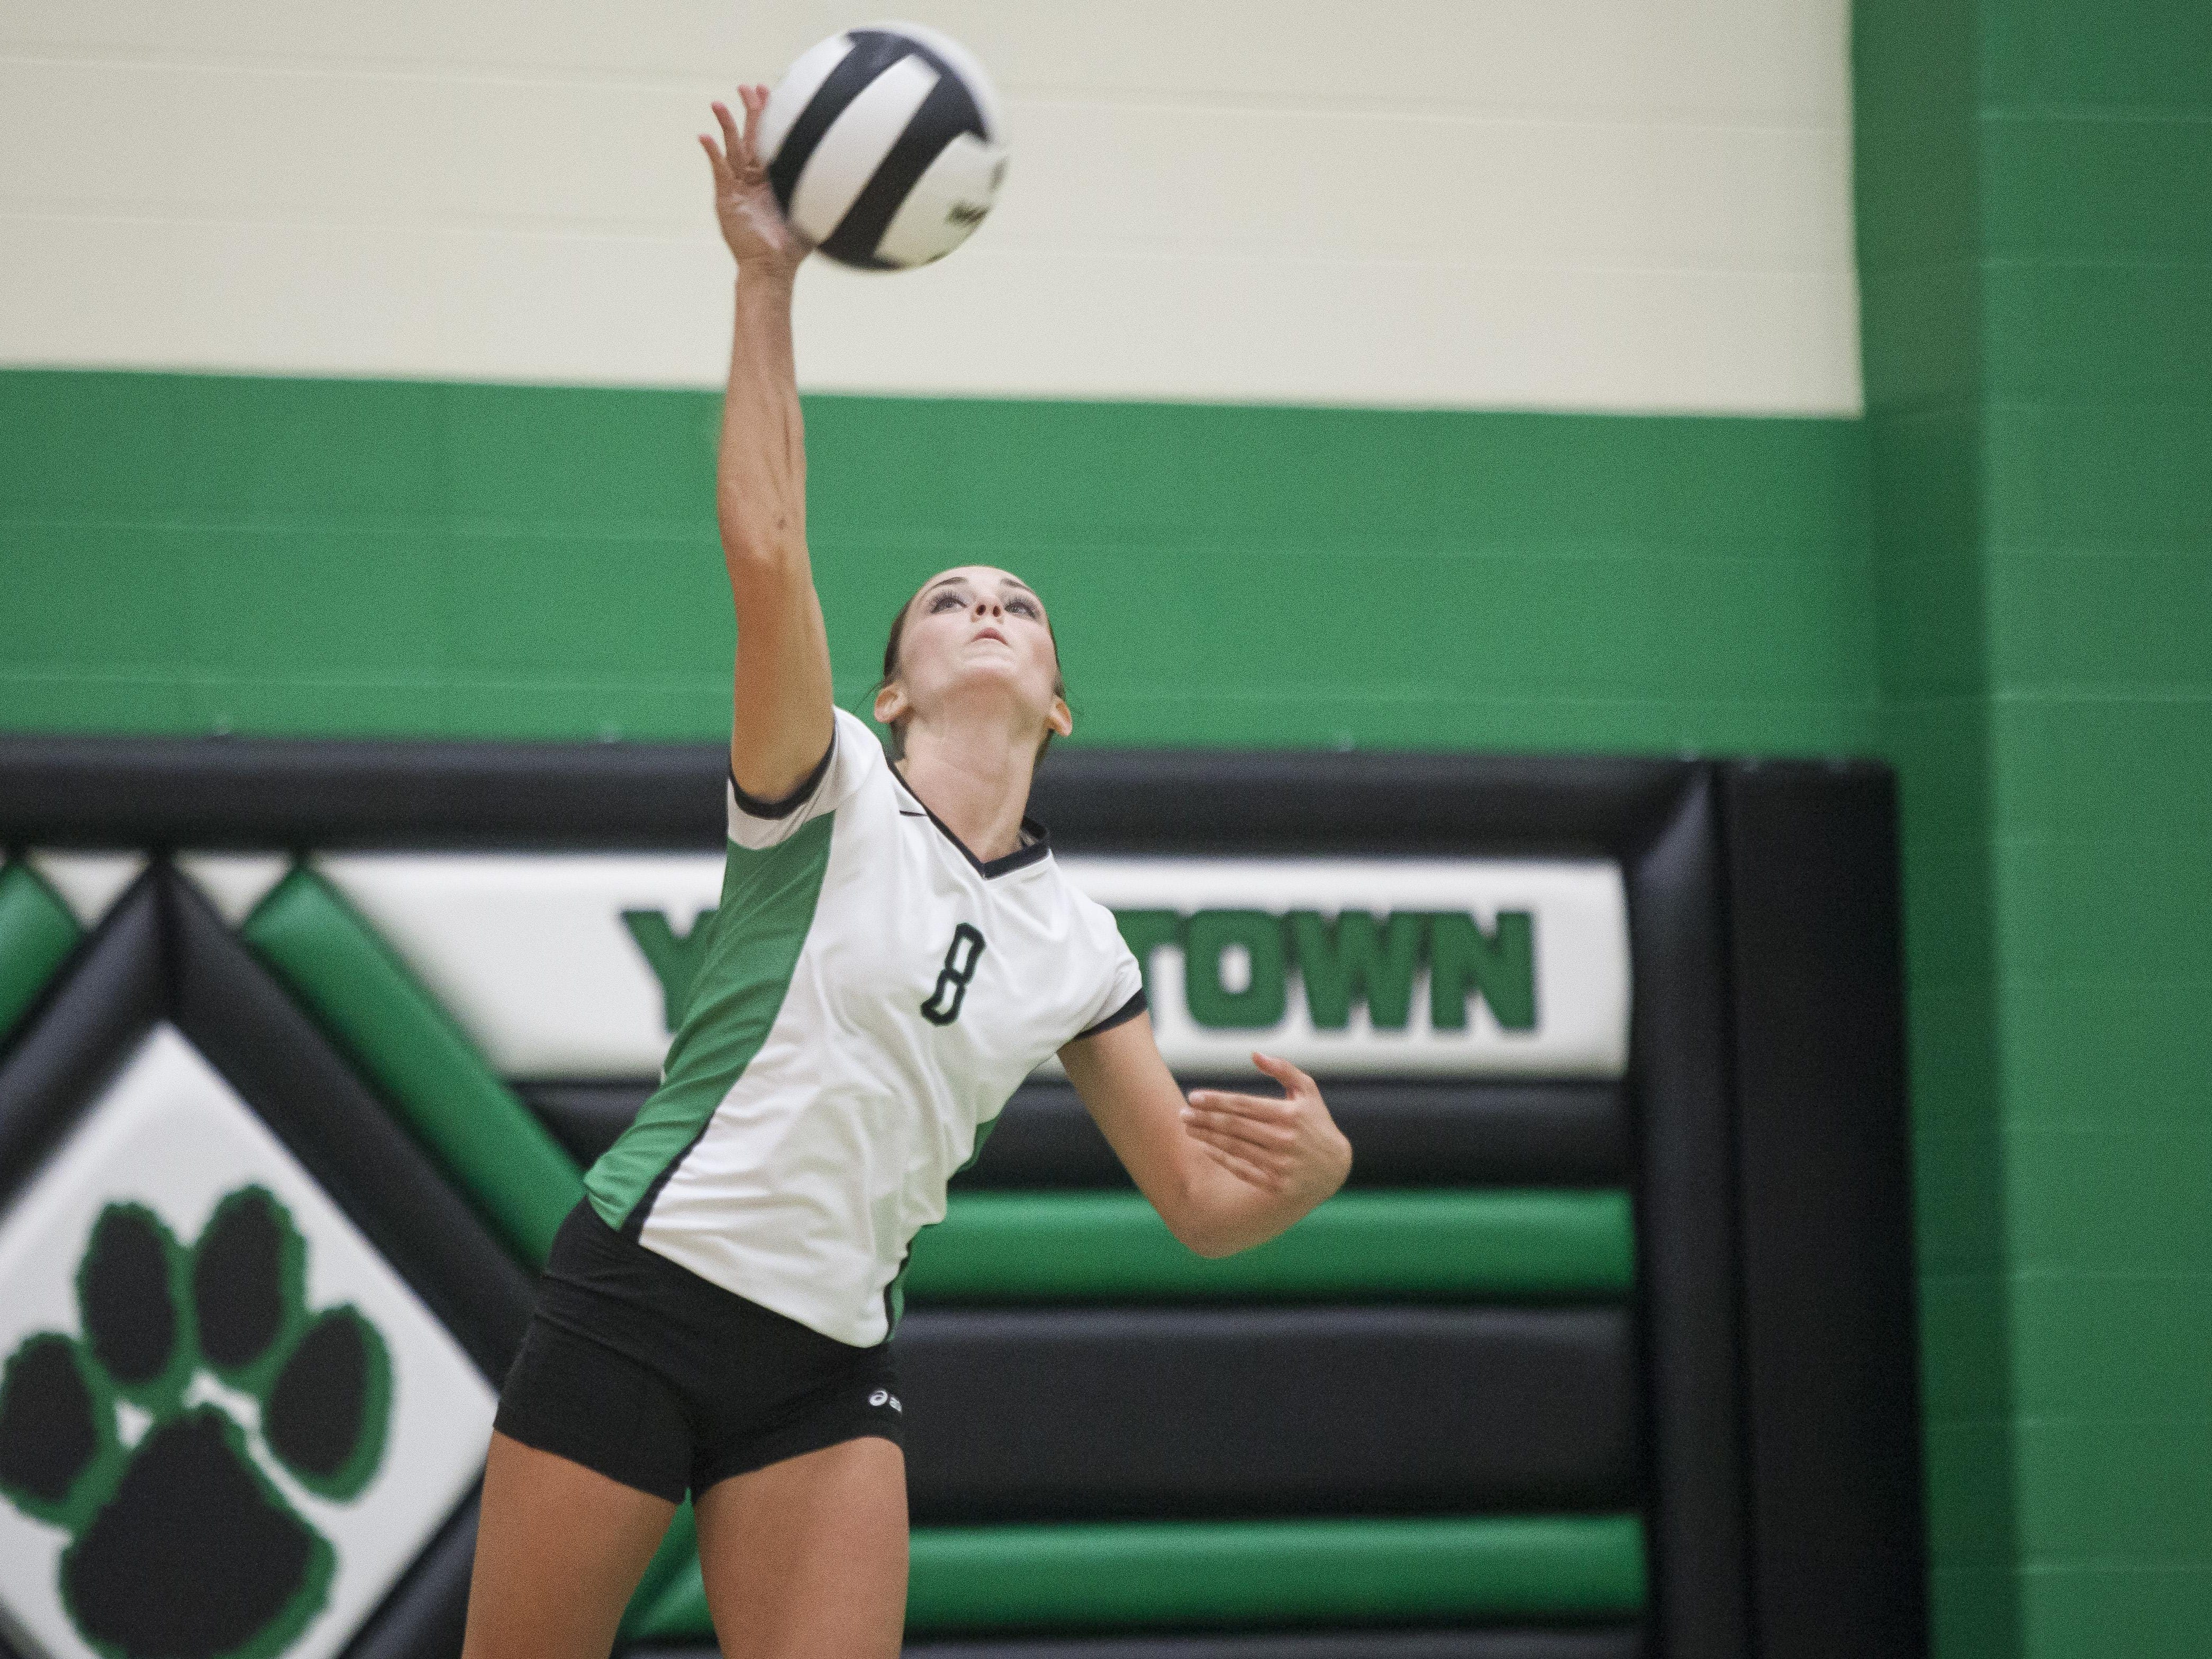 Yorktown's Jade York serves during Monday's home match against Wapahani. The Tigers swept the Raiders.